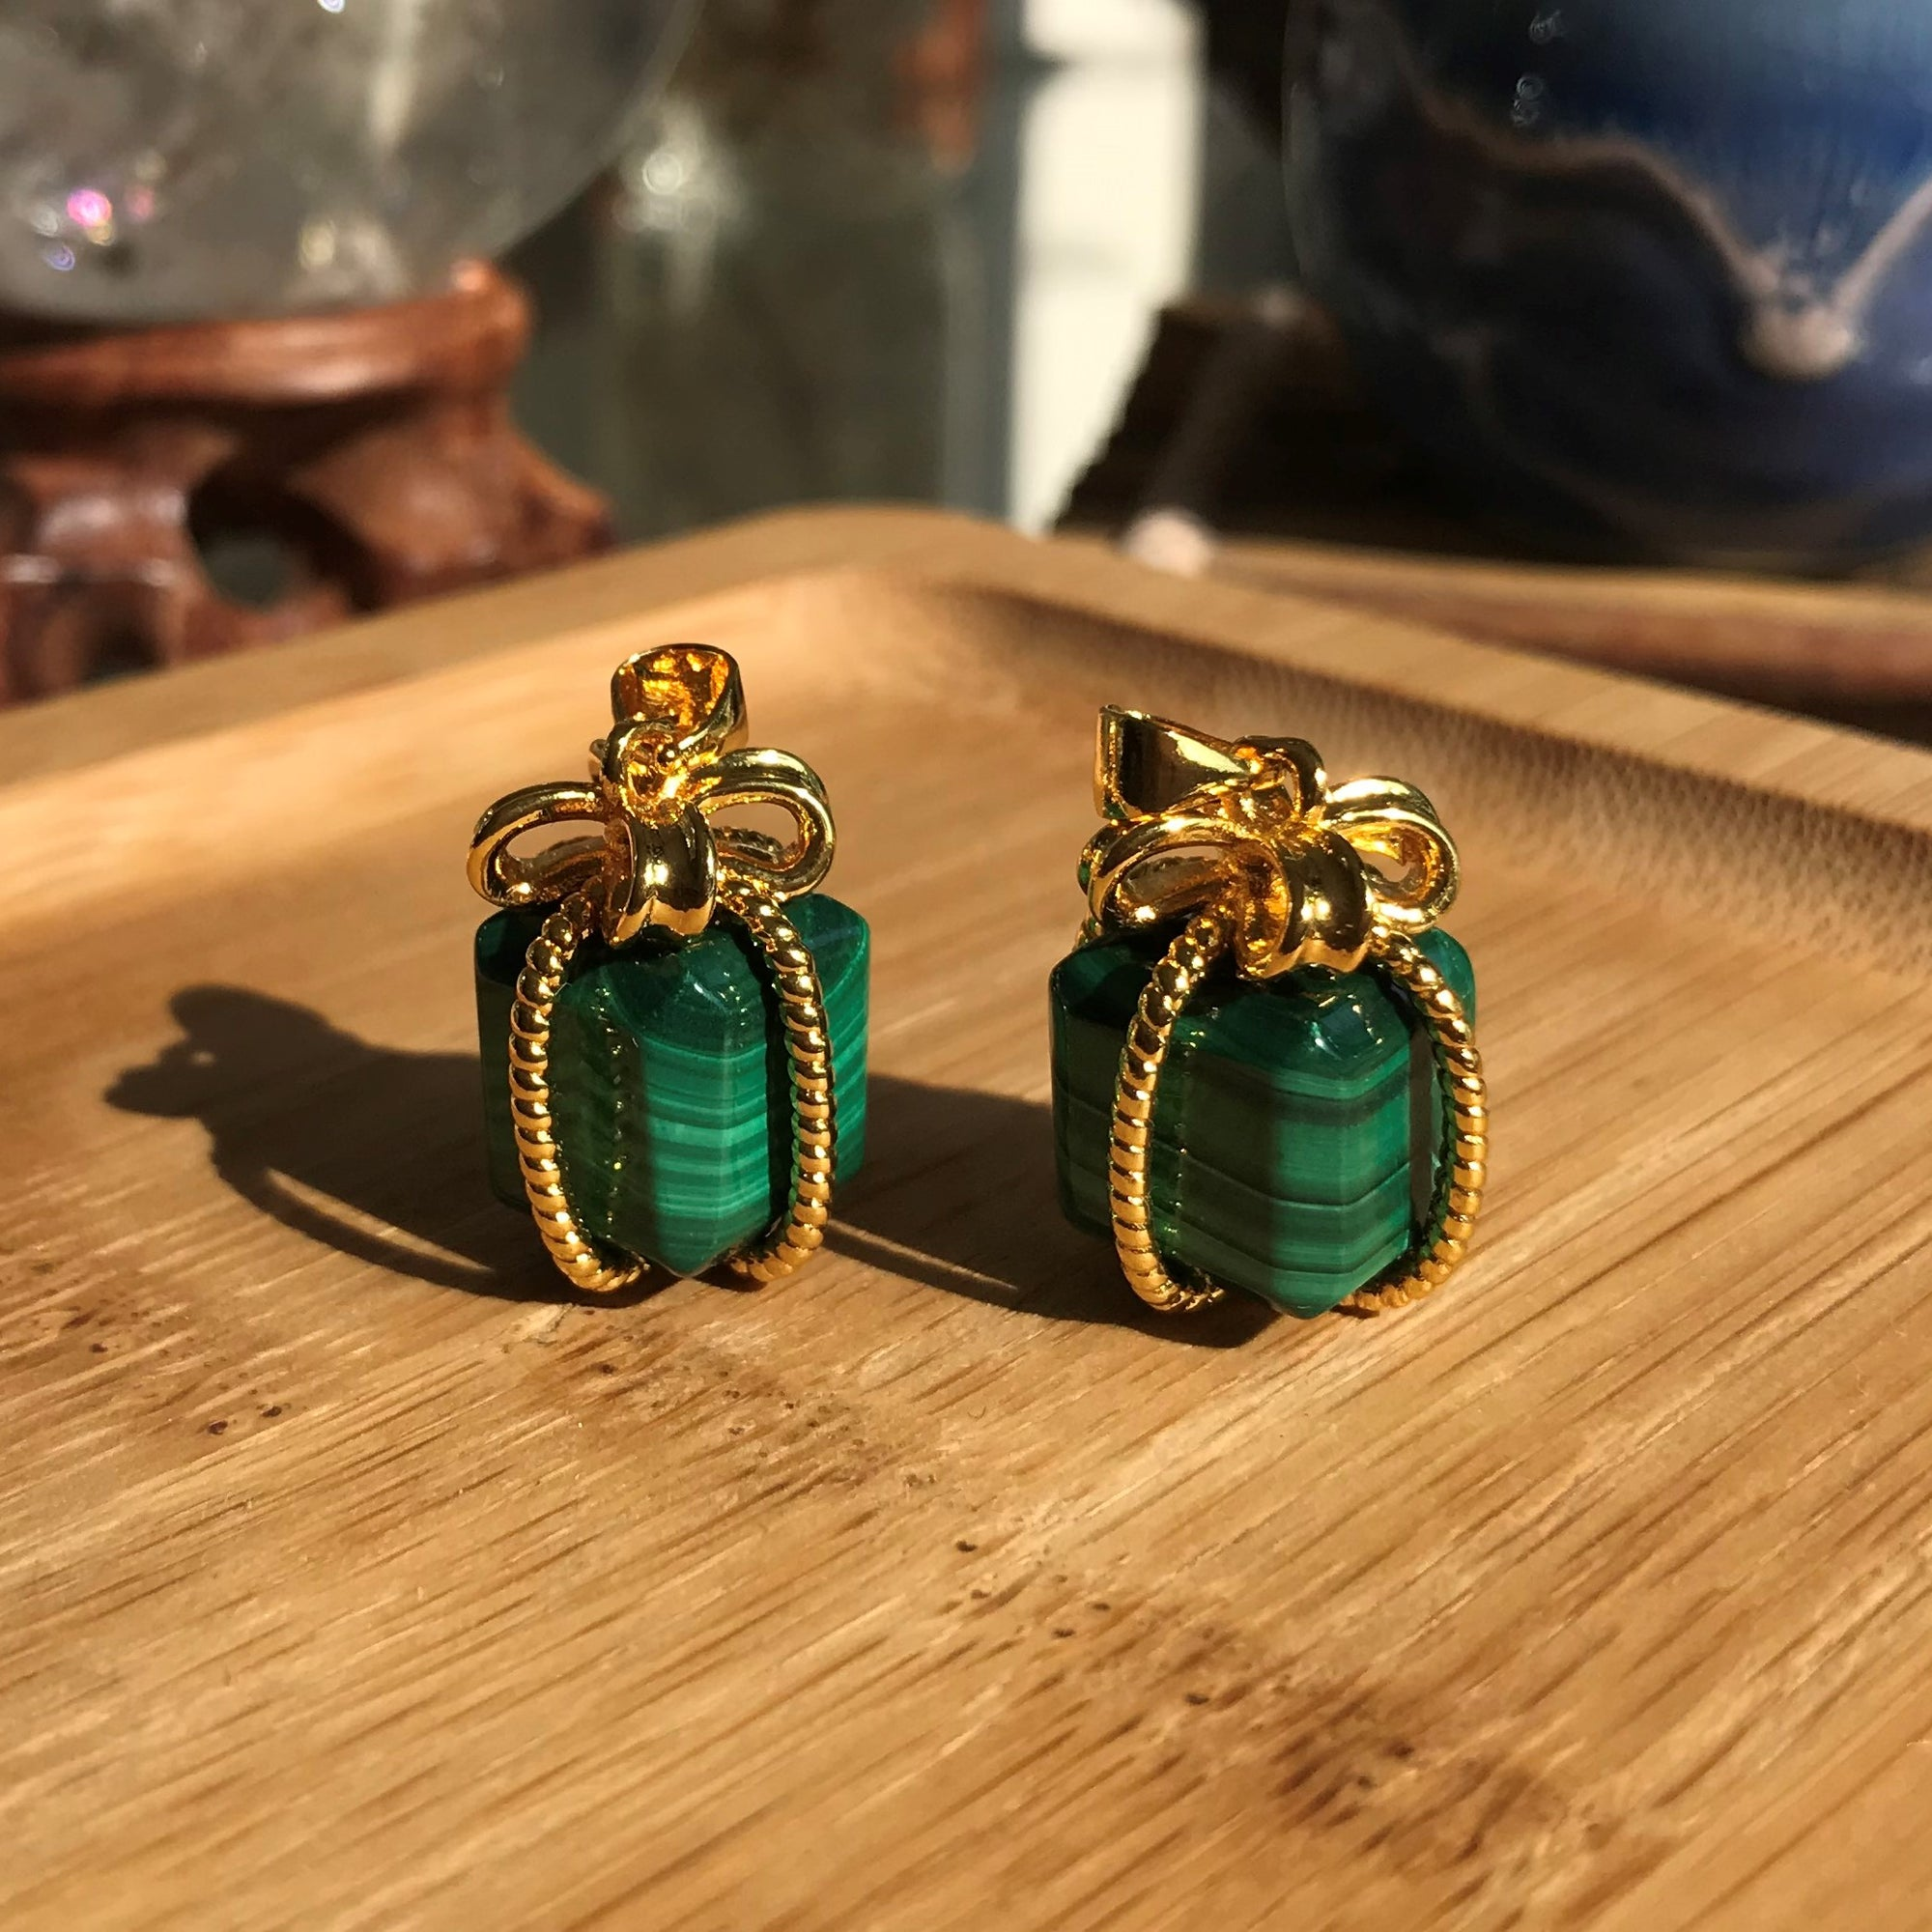 Cute Festive Presents - Taurus Birthstone Charms | 12mm Healing Gemstone Cube Pendants | Genuine Malachite for Heart Chakra Activation, Opens Anahata Energy Center